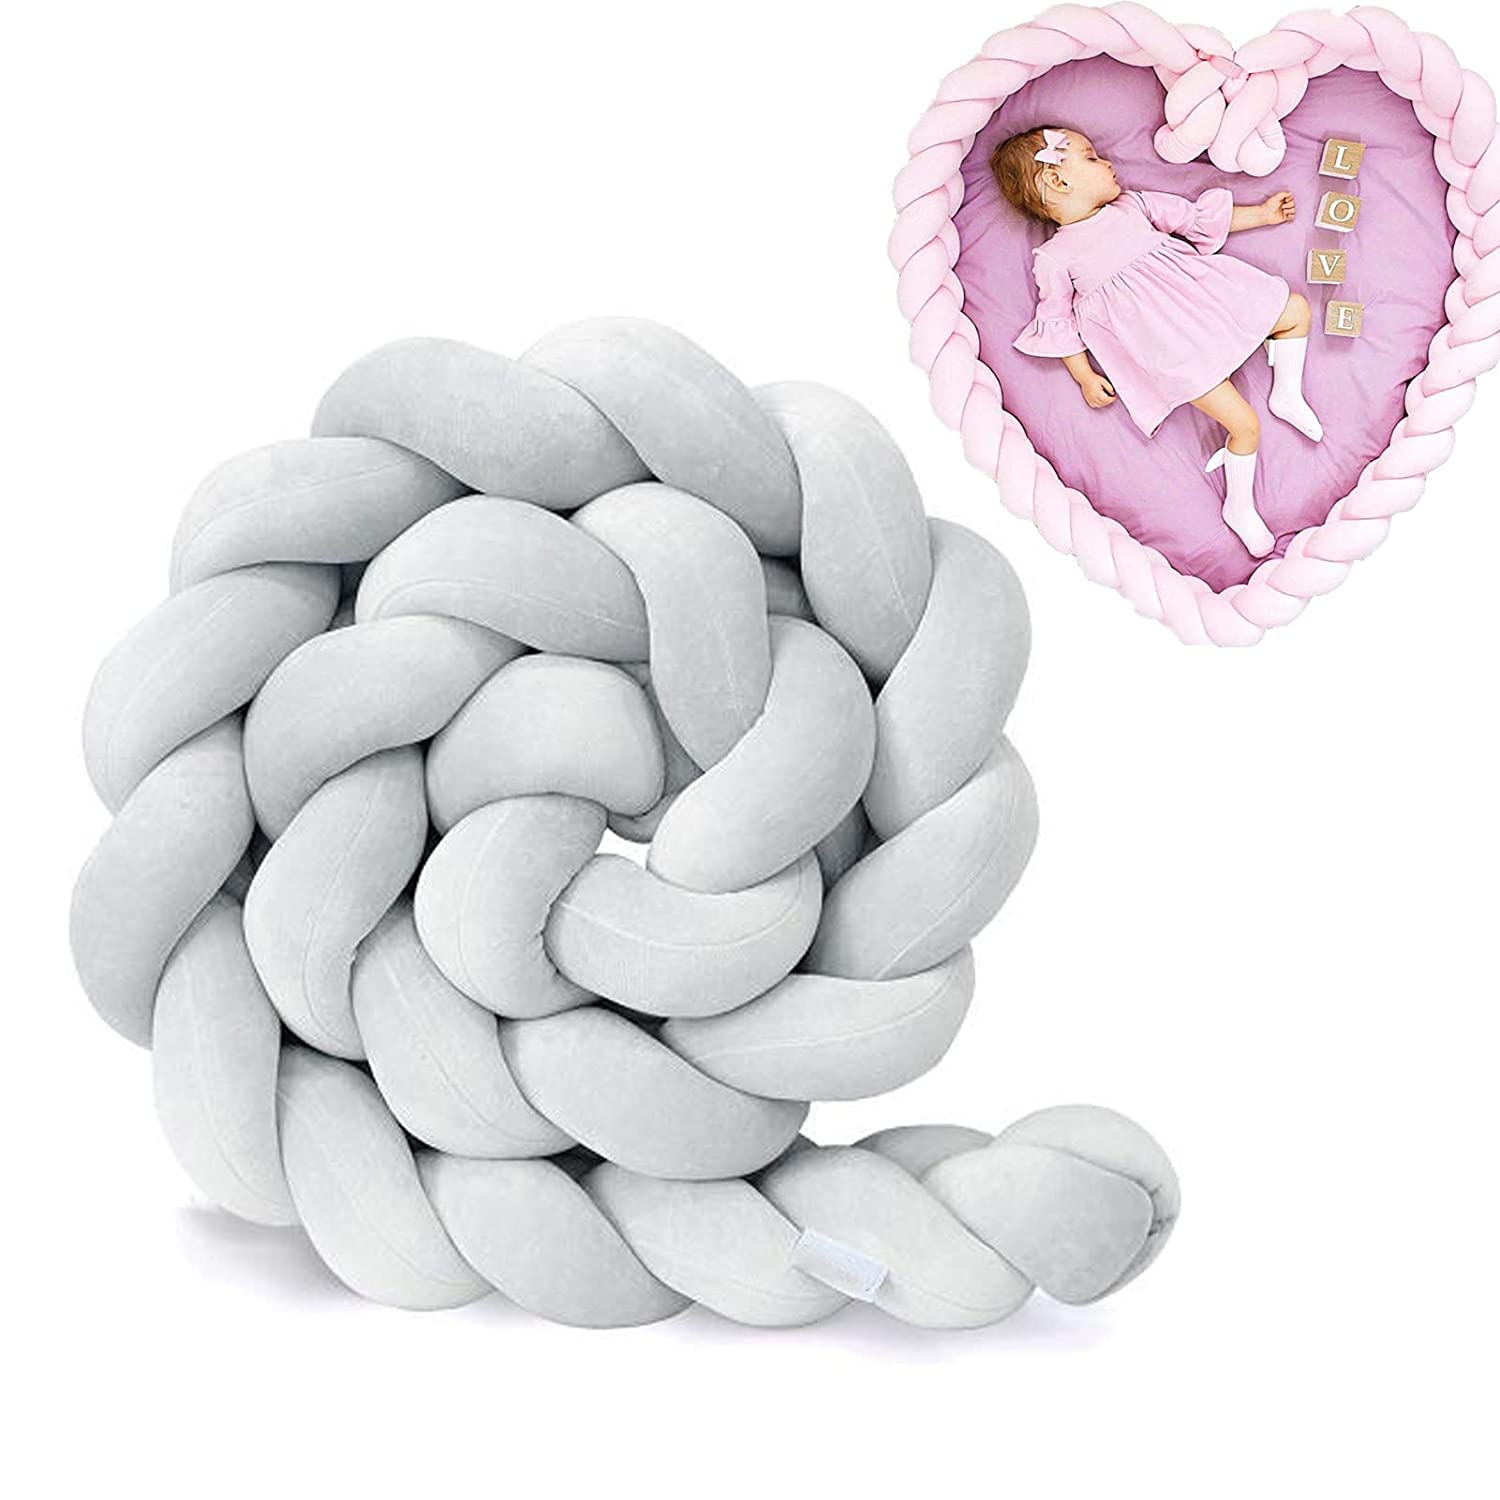 Baby Clearance SALE Limited time Cushion Soft Knot Max 70% OFF Handmade Decoratio Braided Pillow